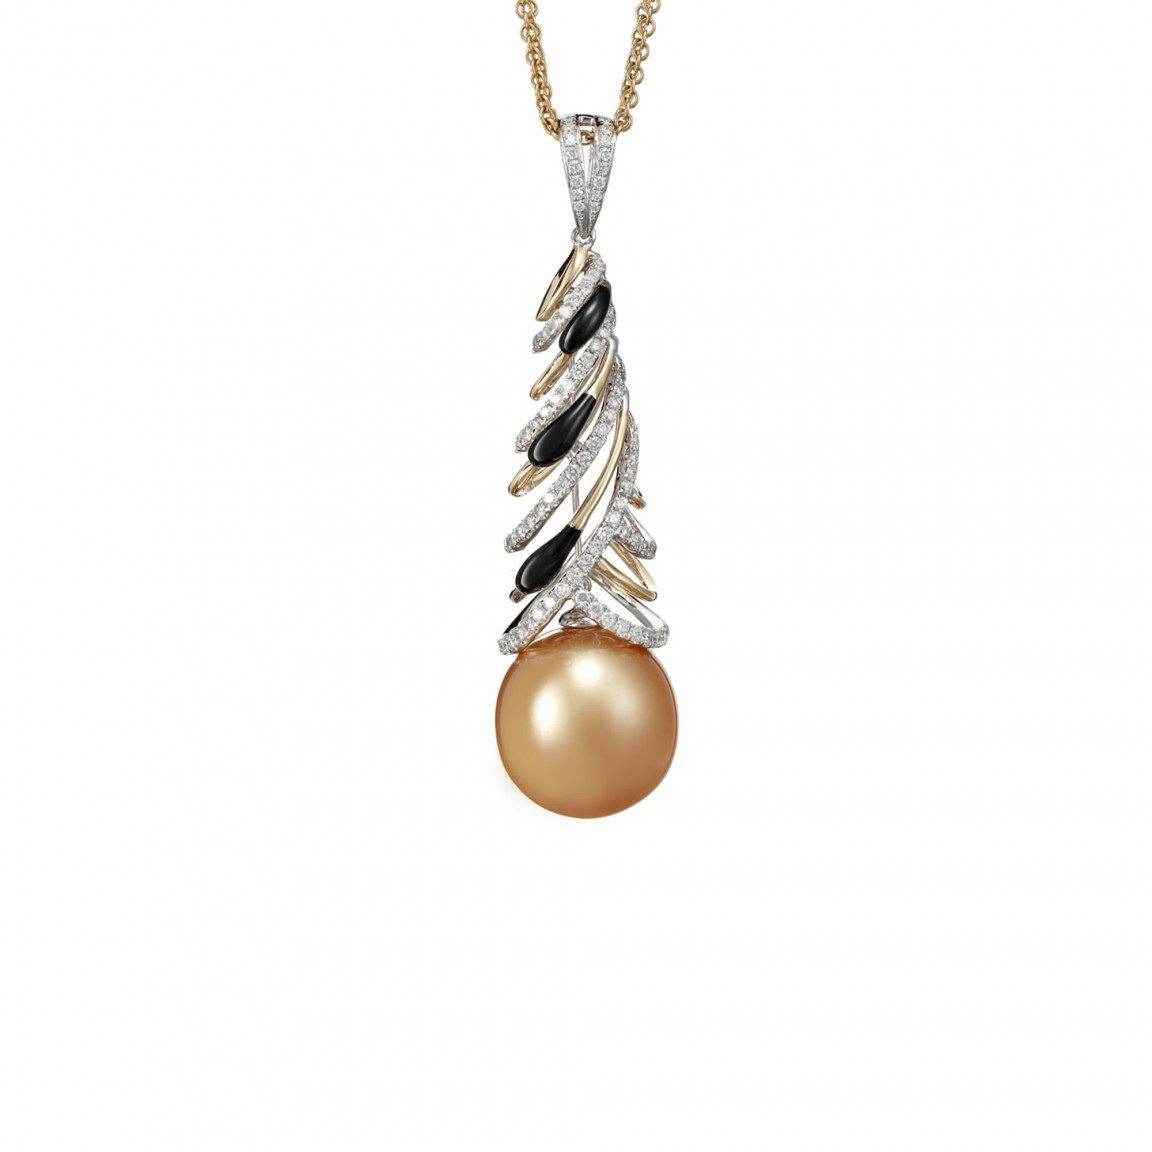 Mesmerizing Pearl Pendant Necklace